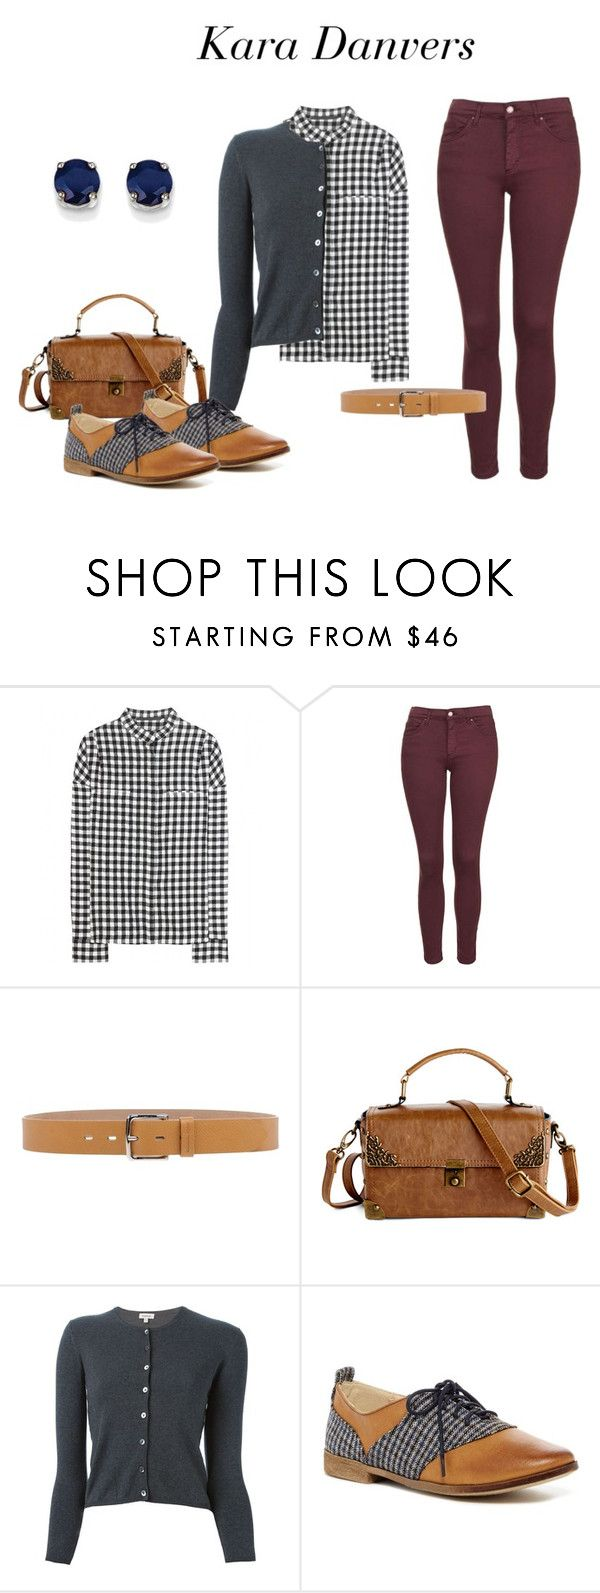 """Kara Danvers (Supergirl) Inspired Outfit"" by vintageuniquefashion4u ❤ liked on Polyvore featuring Haider Ackermann, Topshop, Michael Kors, P.A.R.O.S.H., Restricted, Kevin Jewelers, vintage, VintageInspired, TV and supergirl"